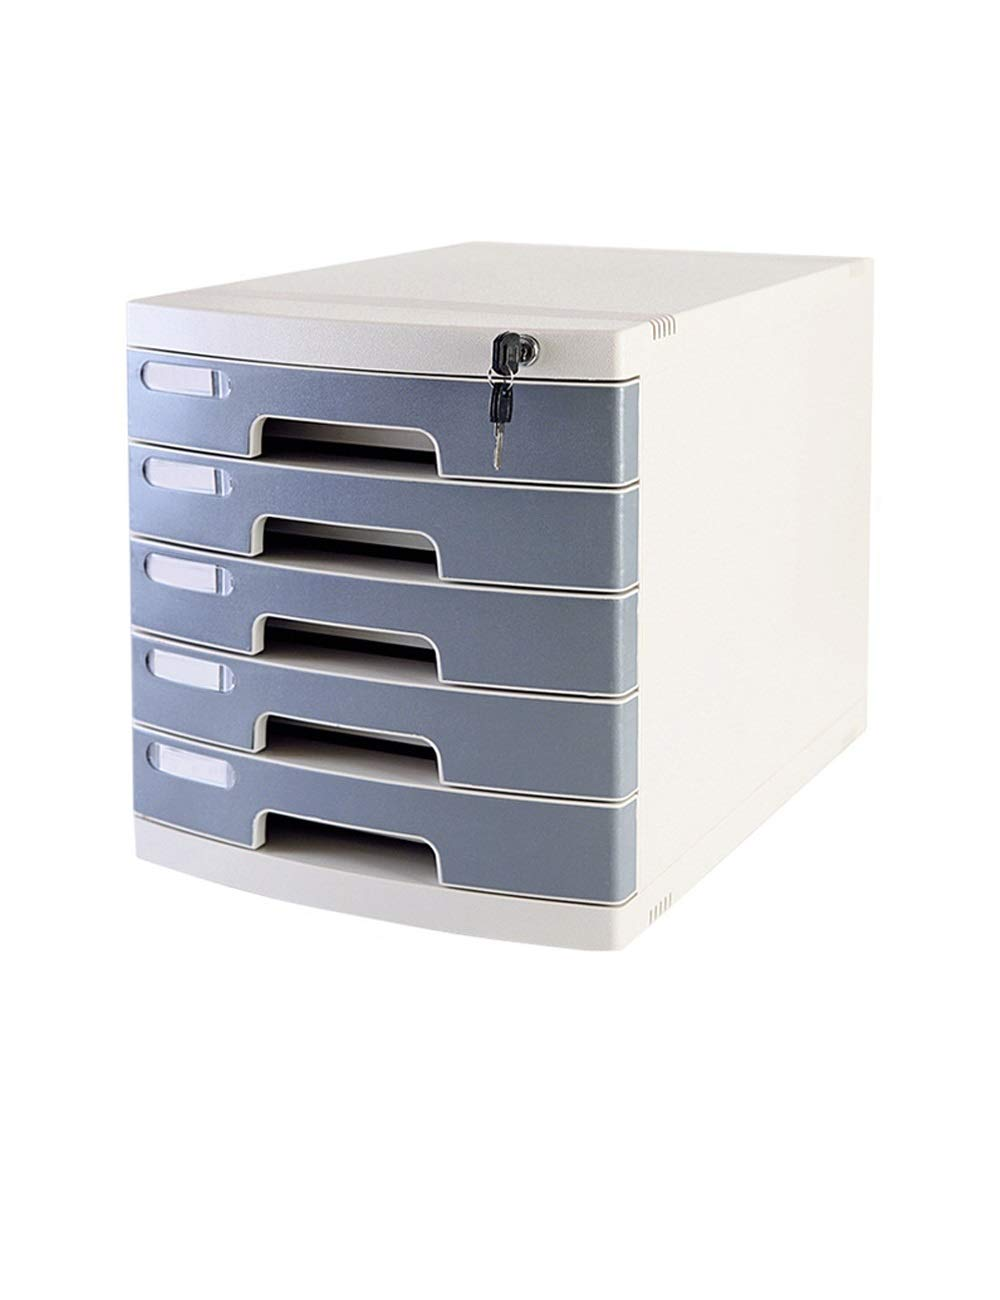 File Cabinet Office Desktop Drawer Type Stationery Cabinet 5th Floor A4 Plastic Data Cabinet Storage Box Storage with Lock Filing cabinets (Color : B)